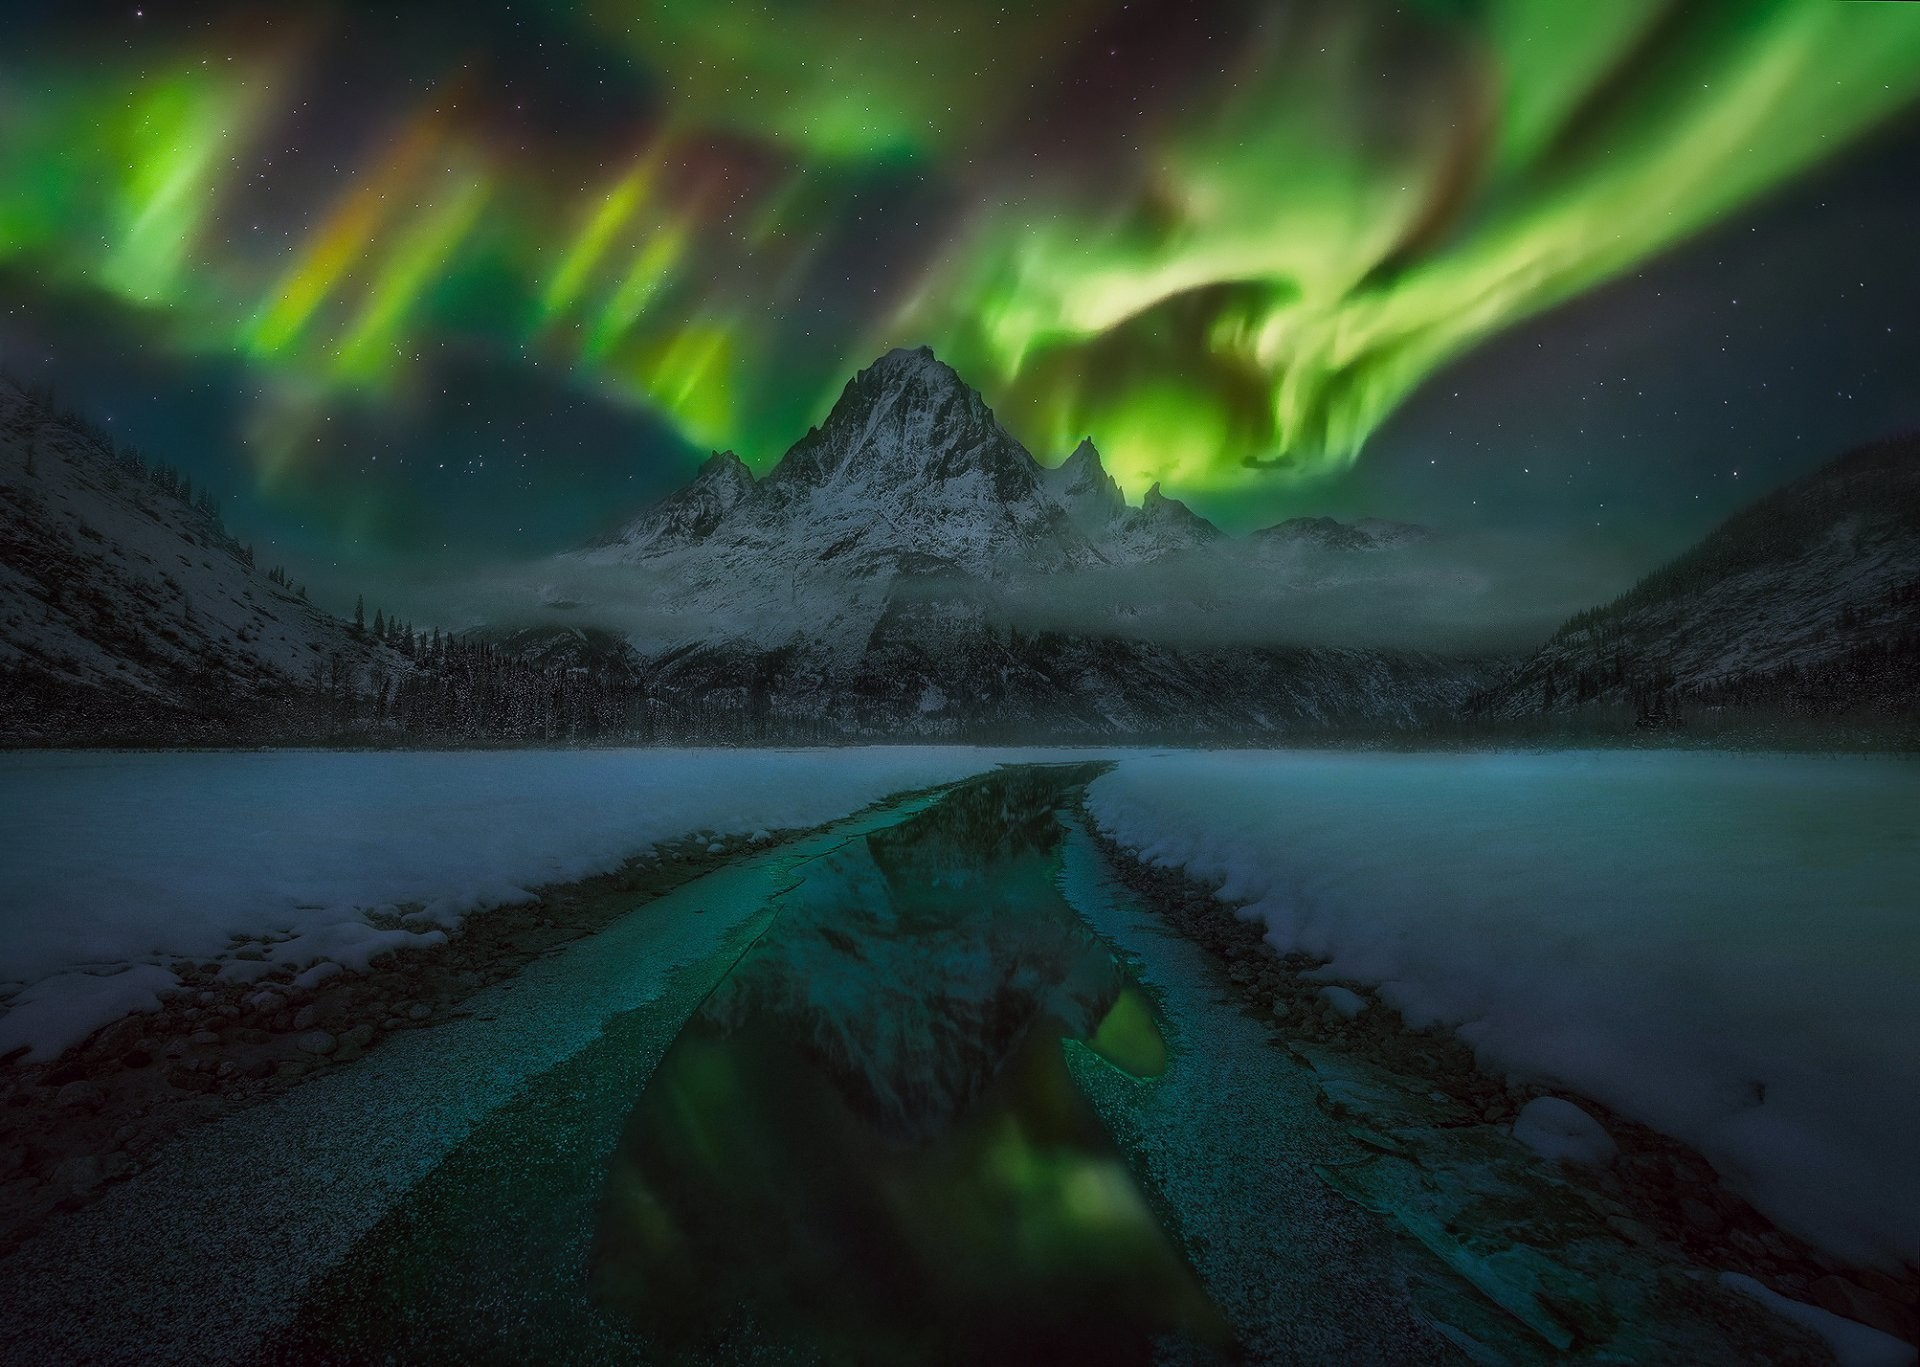 winter night sky star northern lights mountain clouds forest snow water  reflection